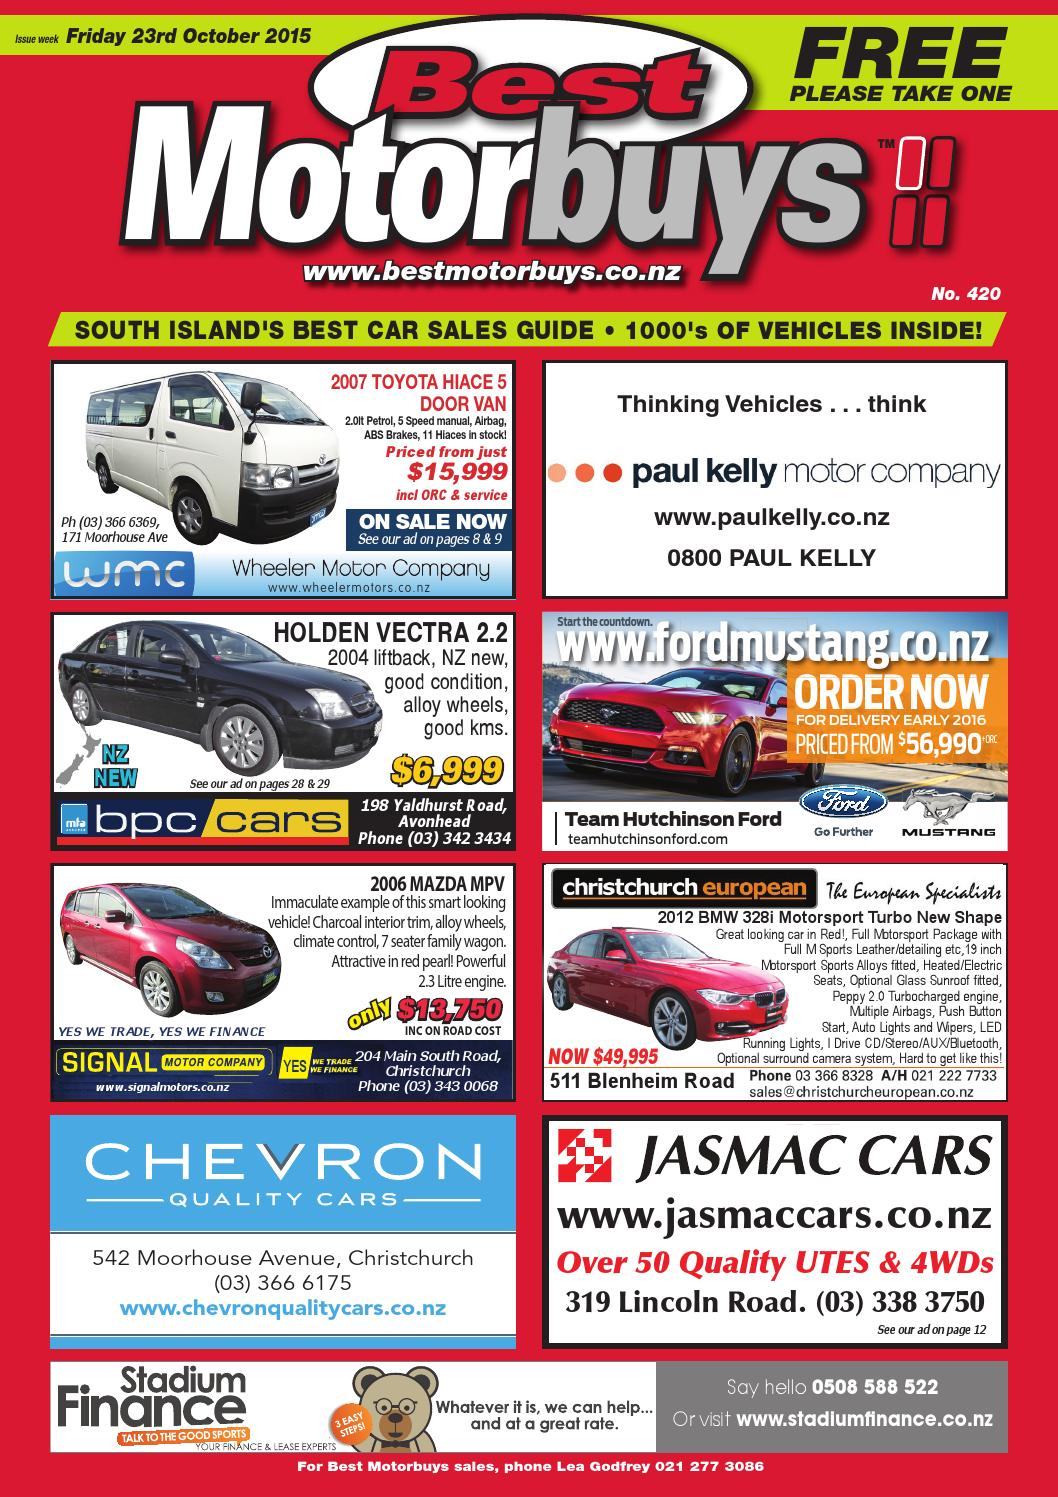 Best Motorbuys 23 10 15 By Local Newspapers Issuu 2002 Ford Focus Se Wagon 20 Liter Dohc 16valve Zetec 4 Cylinder